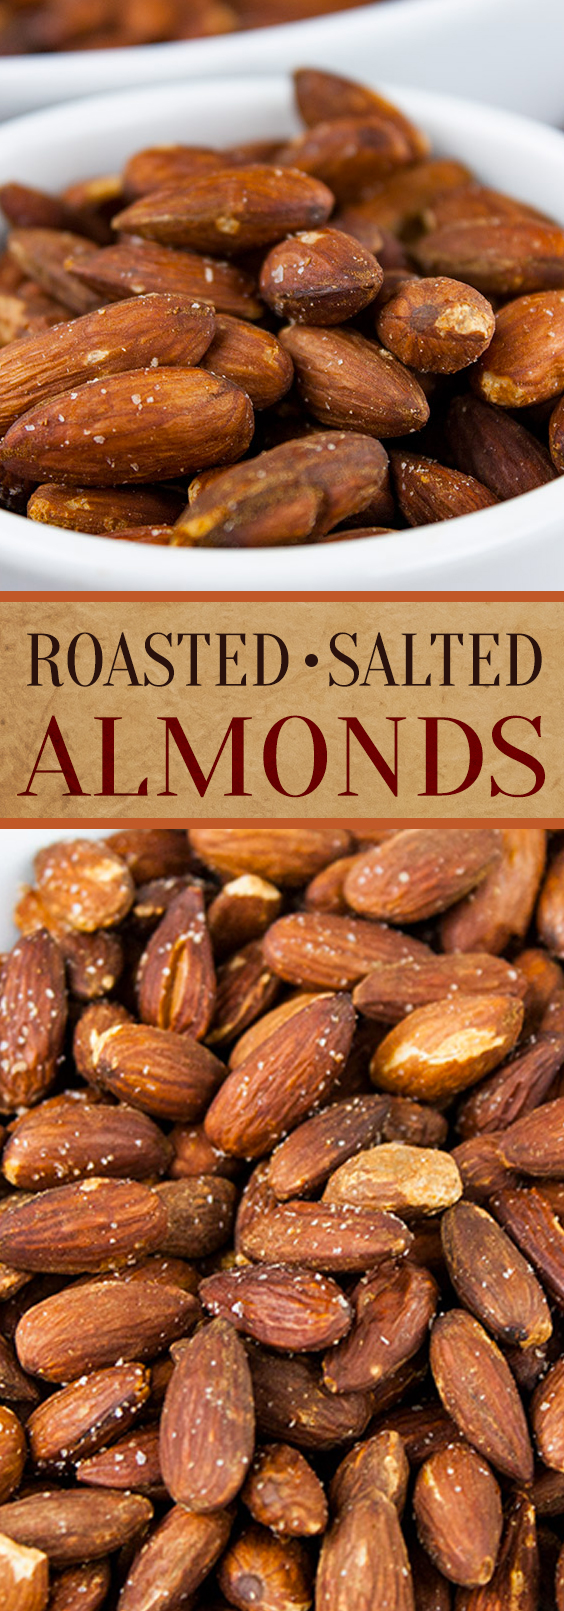 Roasted Salted Almonds - Way more cost effective and definitelytastier. Easiest recipe ever!